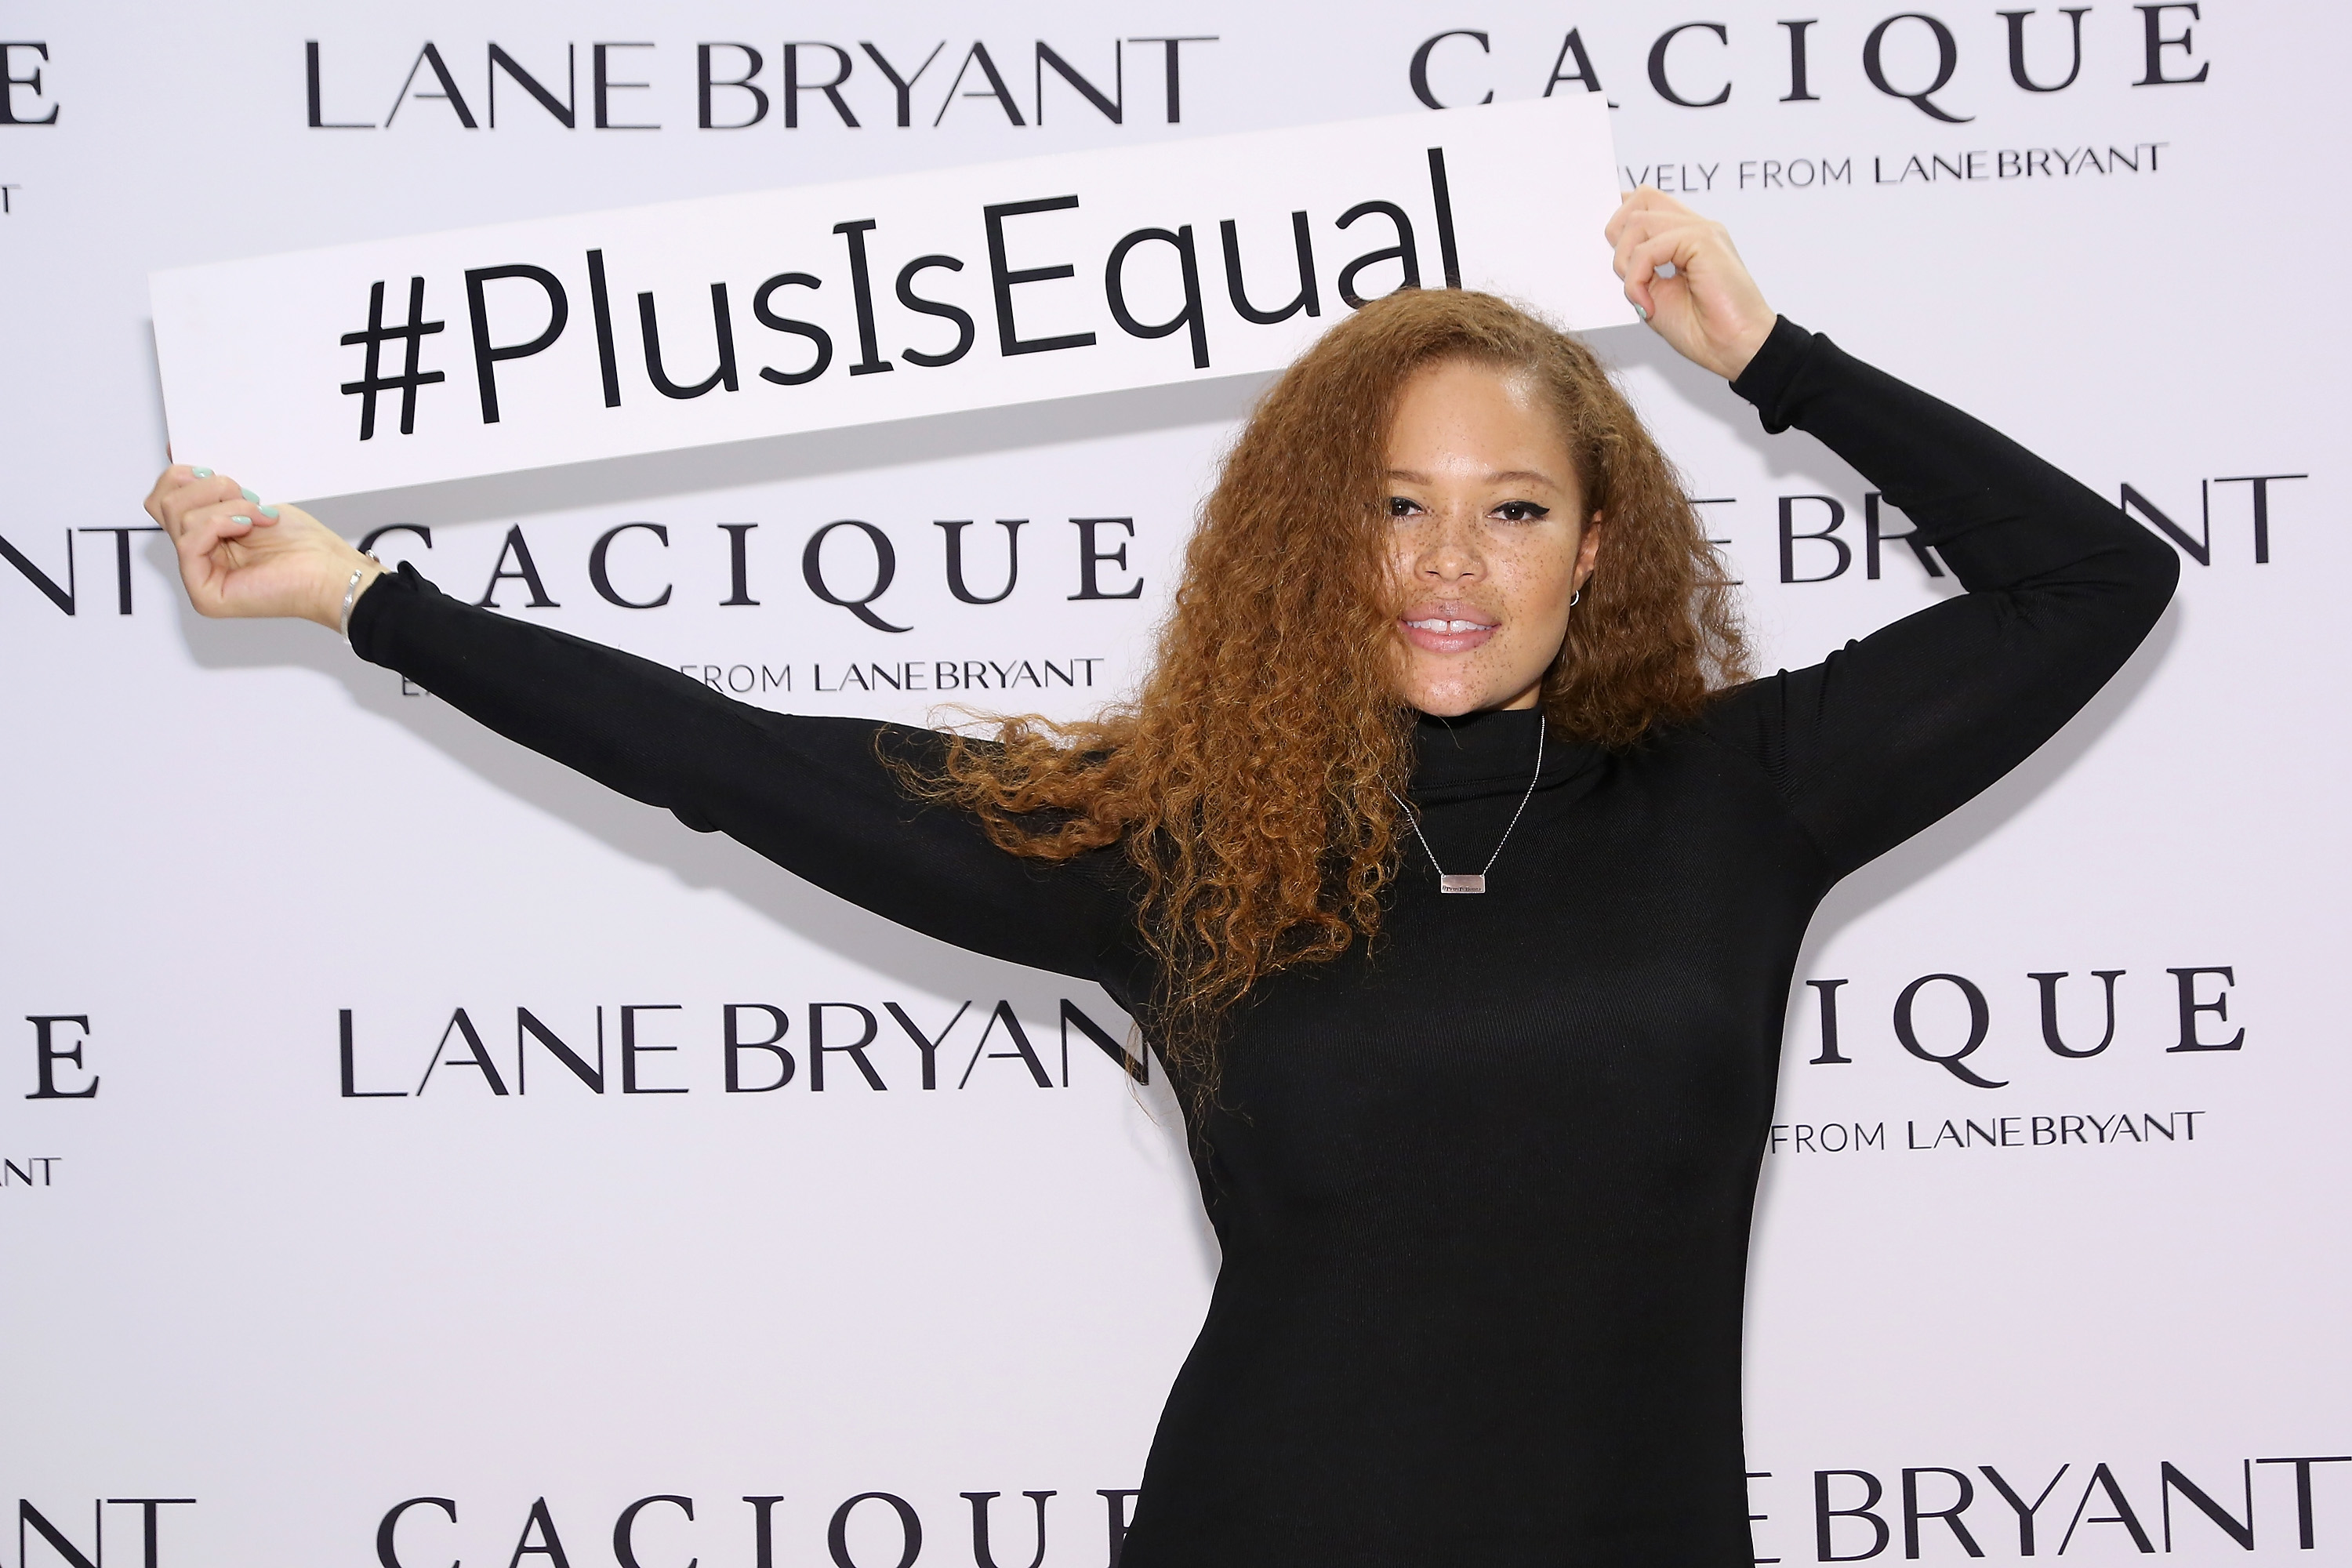 Lane Bryant Launches #PlusIsEqual Campaign